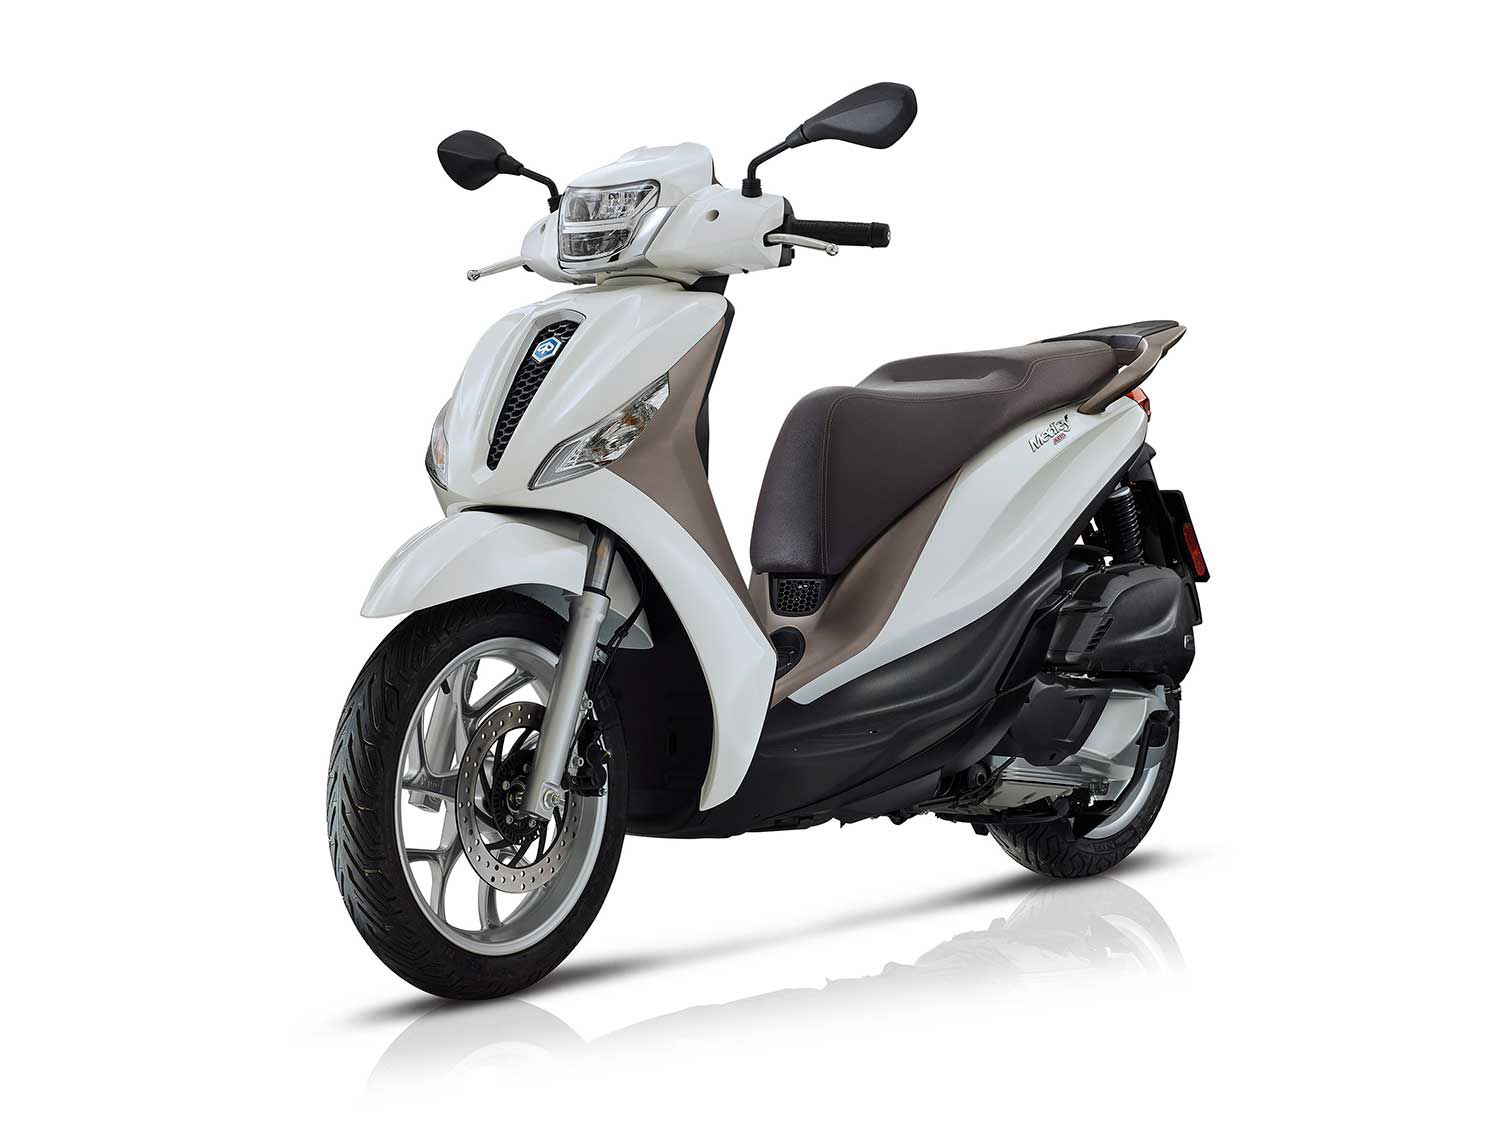 <h2>2020 Piaggio Medley</h2> </br> The 2020 Piaggio Medley is available with either a 125 or 150cc single-cylinder engine.